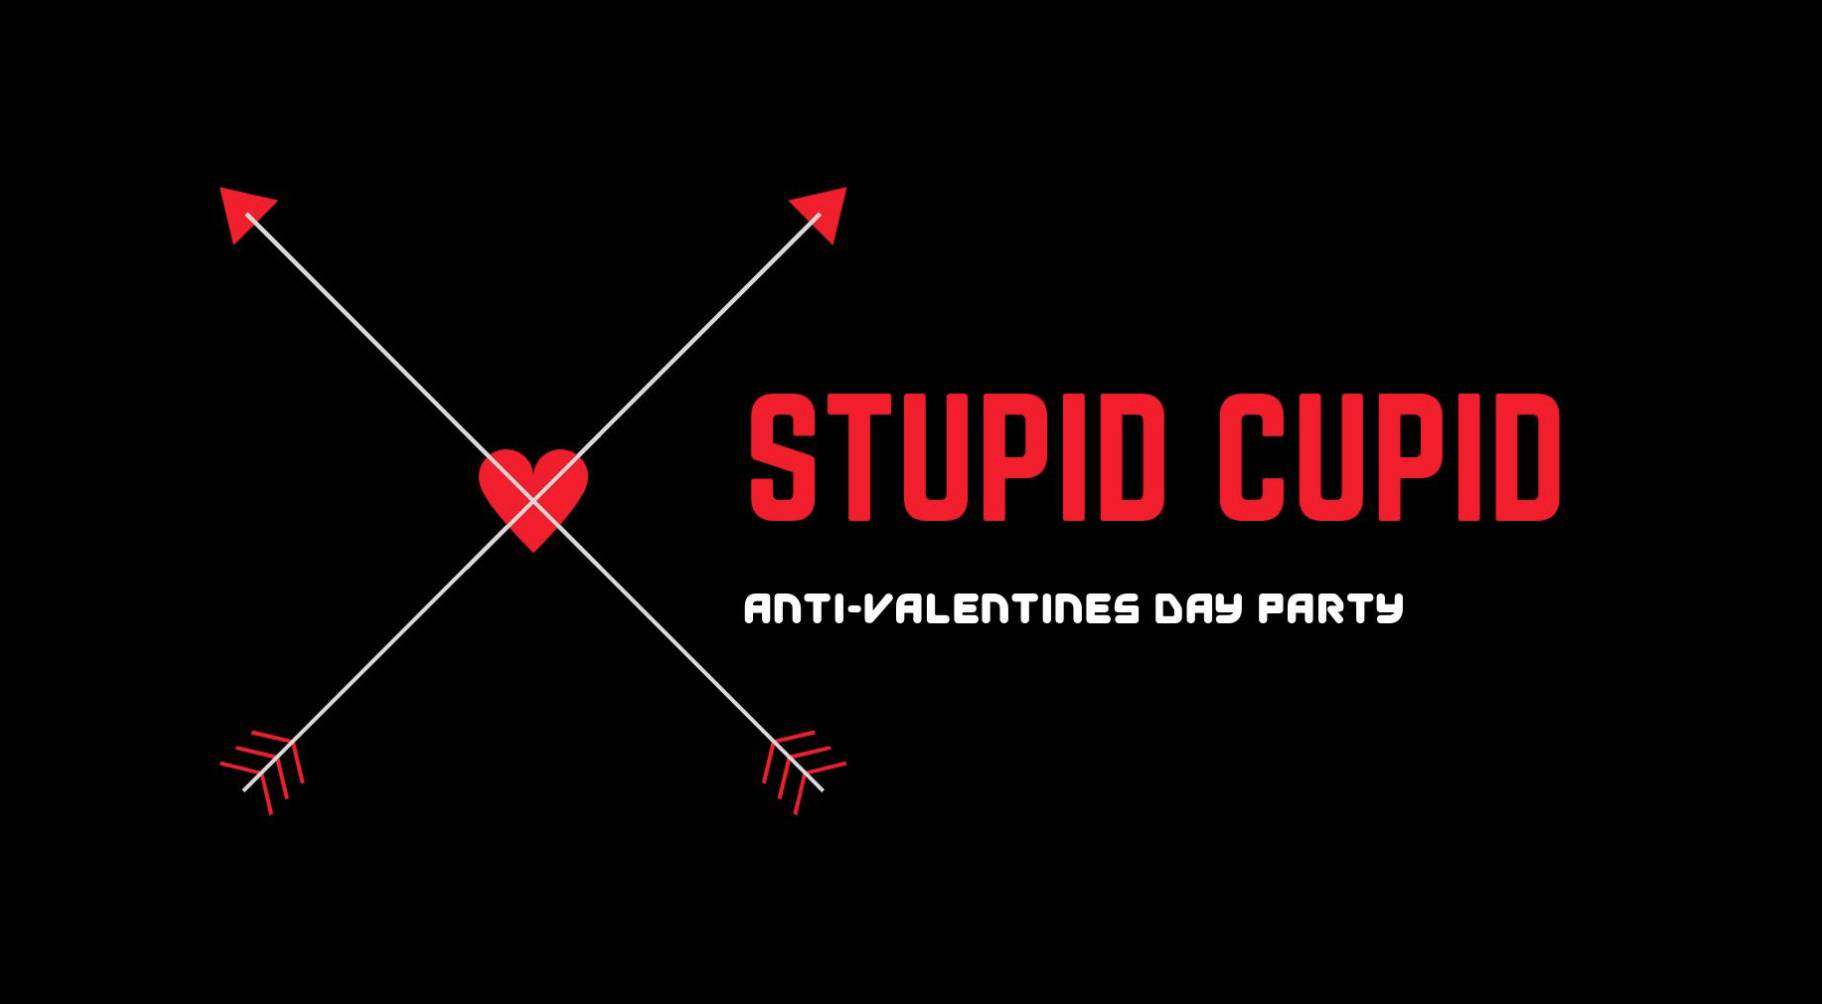 Stupid Cupid: Anti-Valentine's Day Party